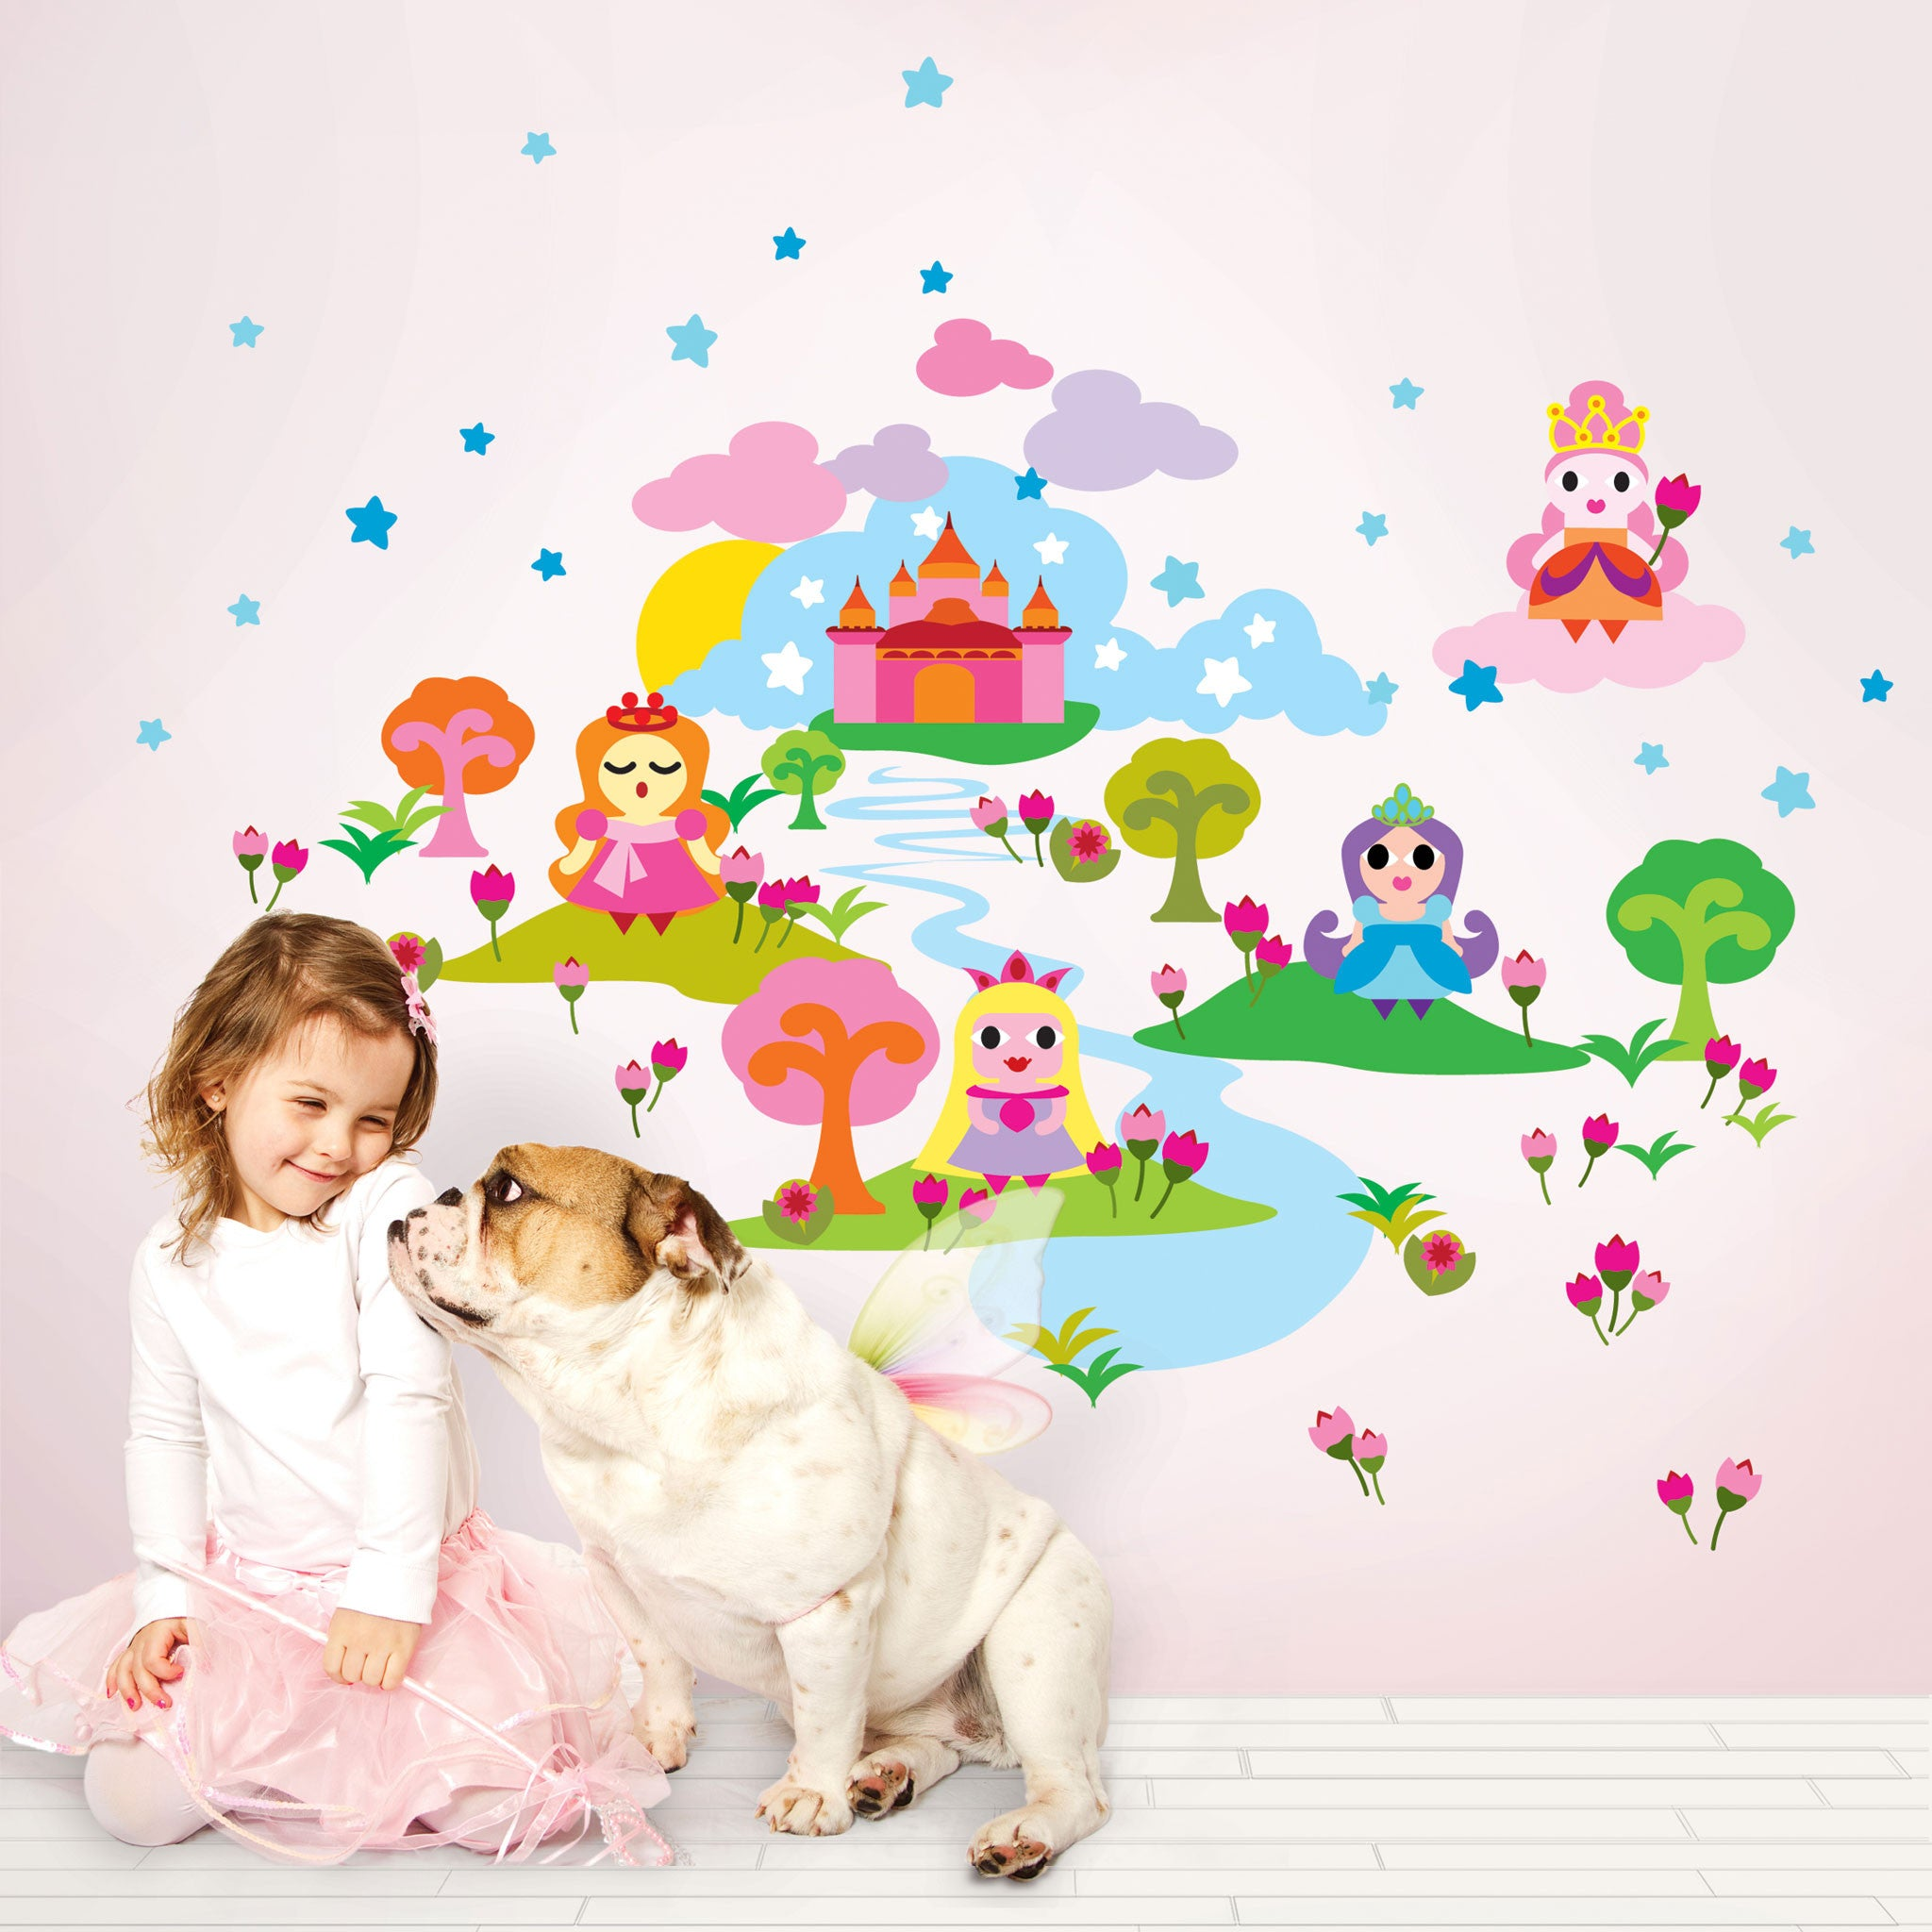 French bull princess wall decal walldecals french bull princess wall decal amipublicfo Gallery